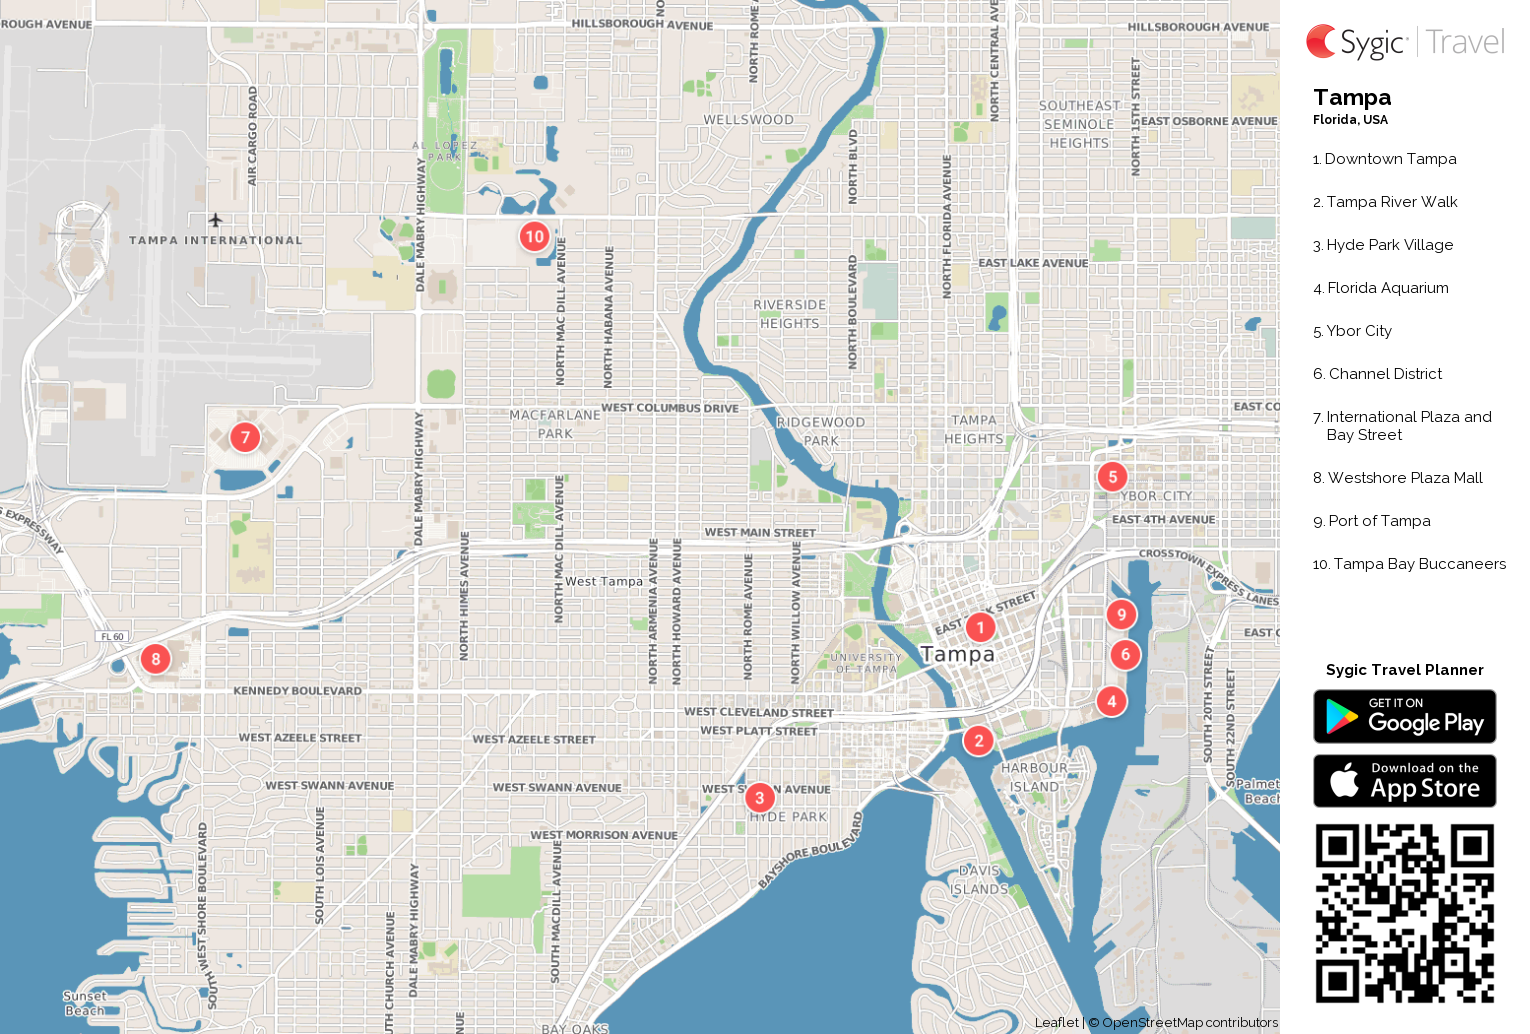 Tampa Printable Tourist Map | Sygic Travel on